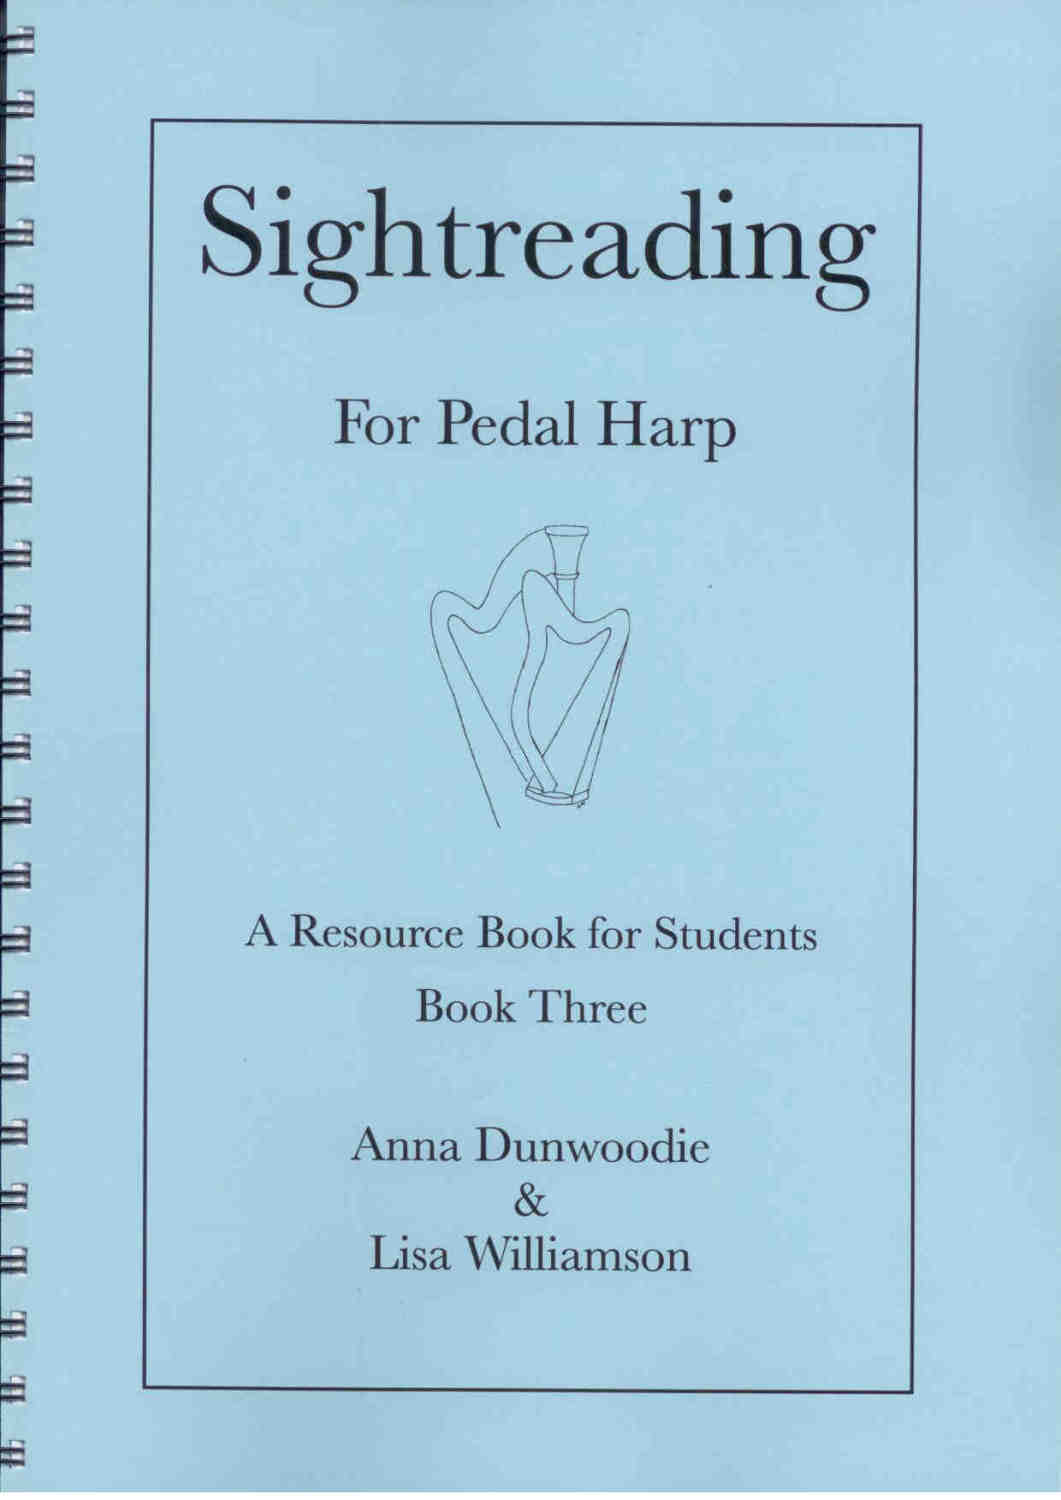 Sightreading for Pedal Harp: Book 3 - A. Dunwoodie, L. Williamson